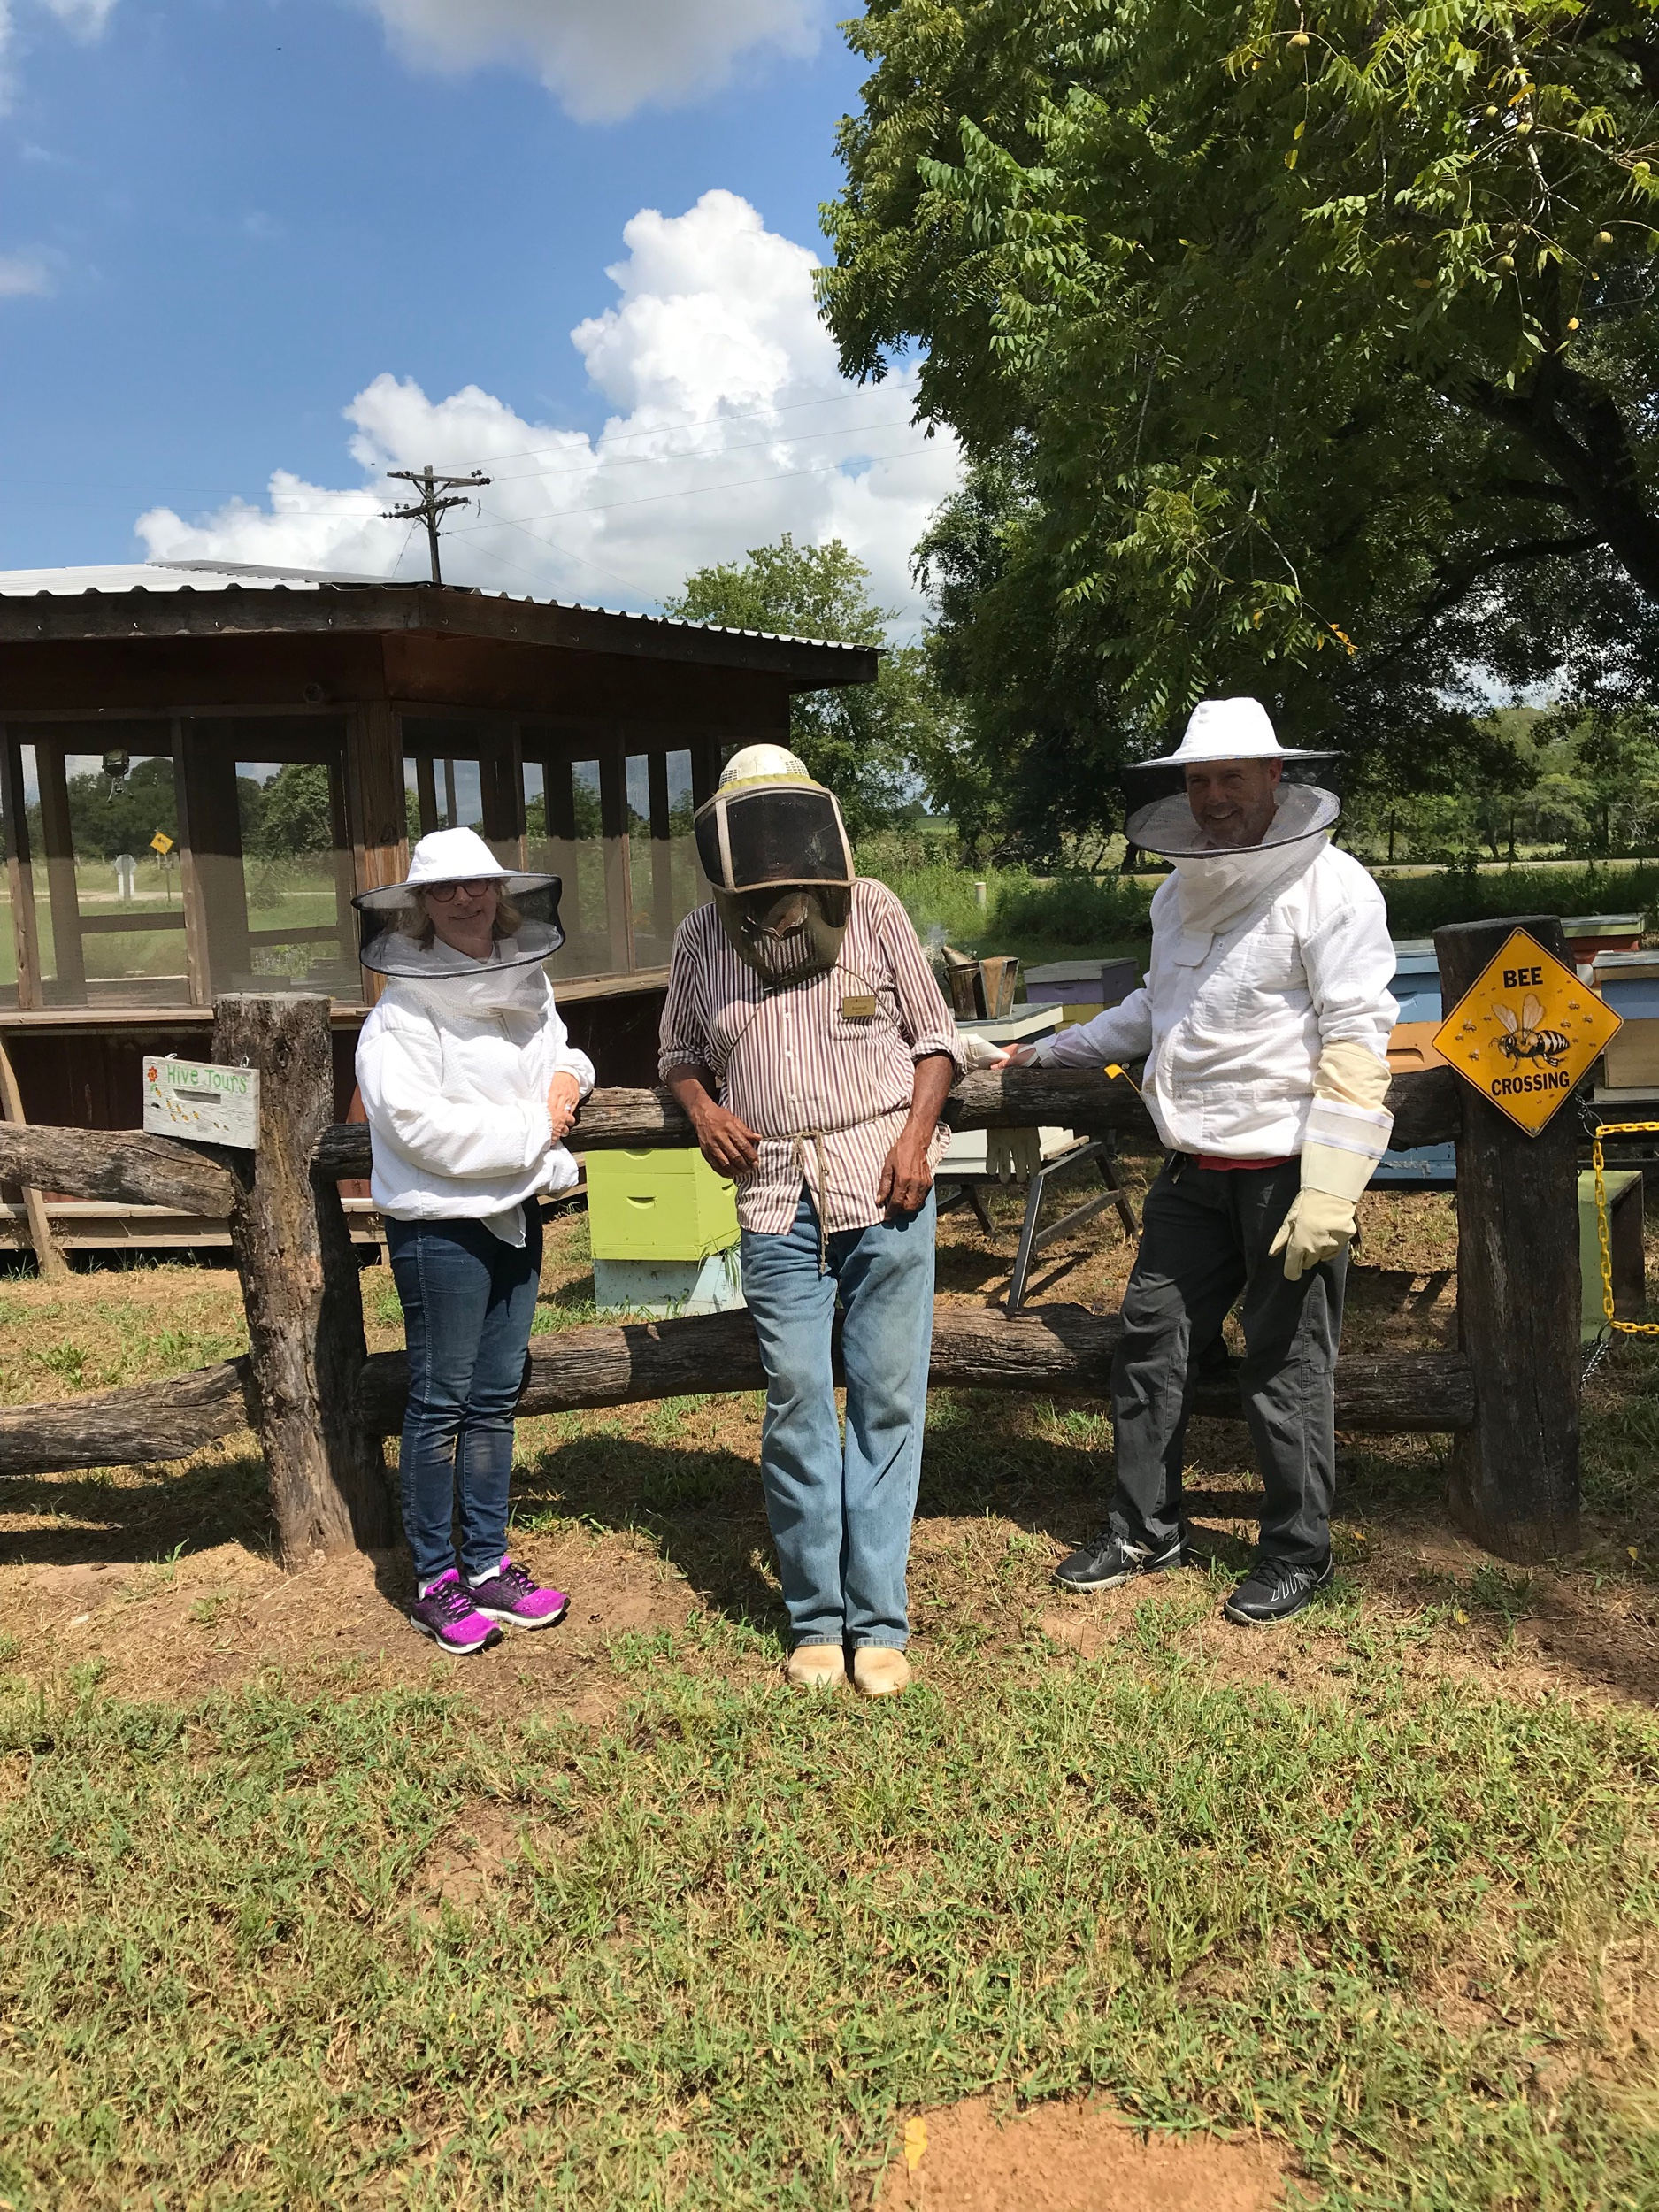 You need to wear long sleeves, loose jeans, and closed-toe shoes. They provide the bee nets/hats and jackets. We are posing in front of some bee boxes and trying to let you see the smoke can behind us. Roosevelt really wanted the smoke to show in the picture. You can't see the smoke.